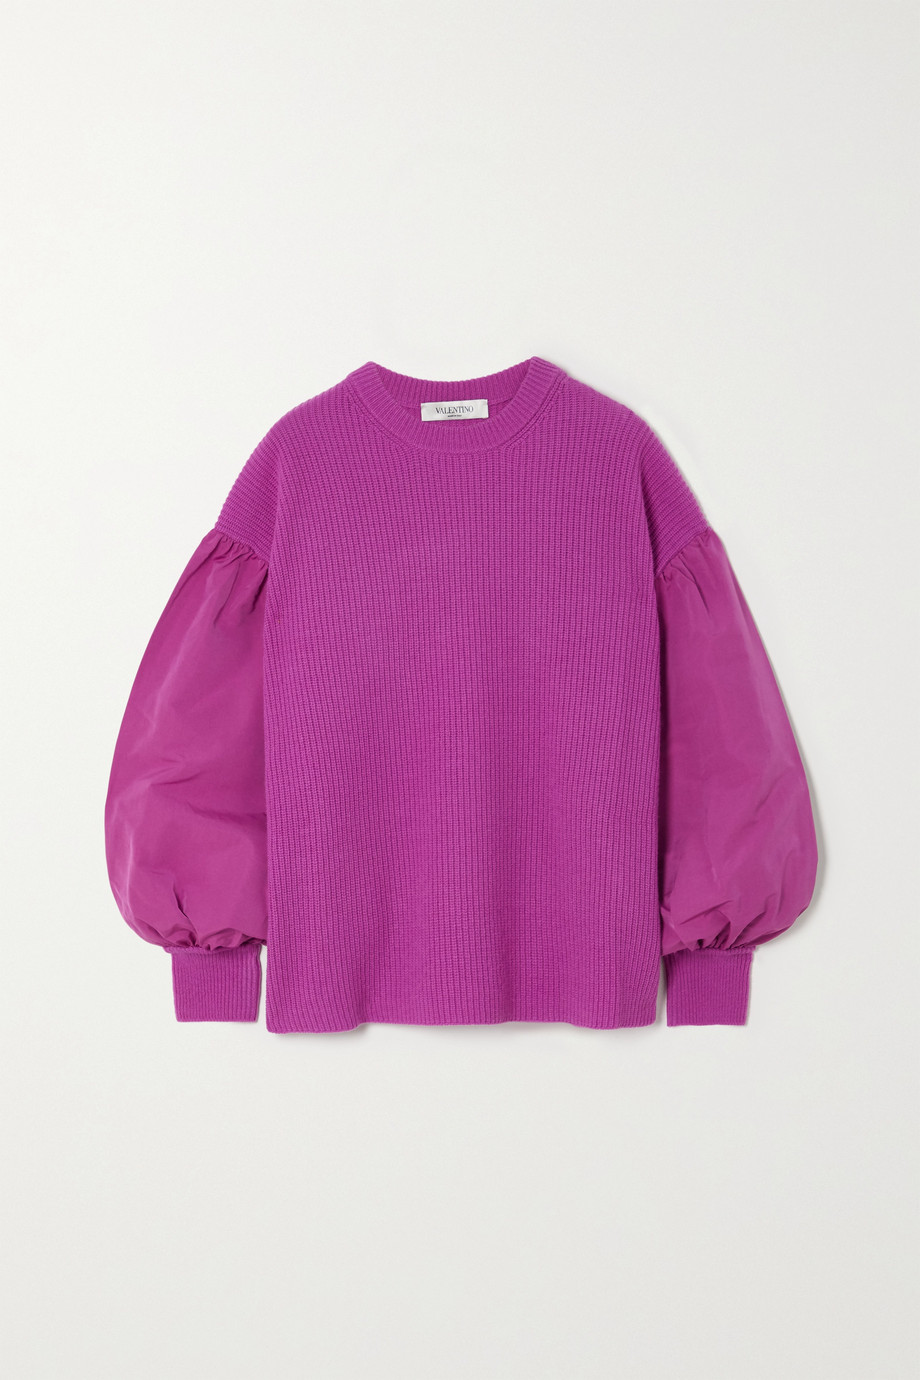 VALENTINO Paneled poplin and ribbed wool and cashmere-blend sweater